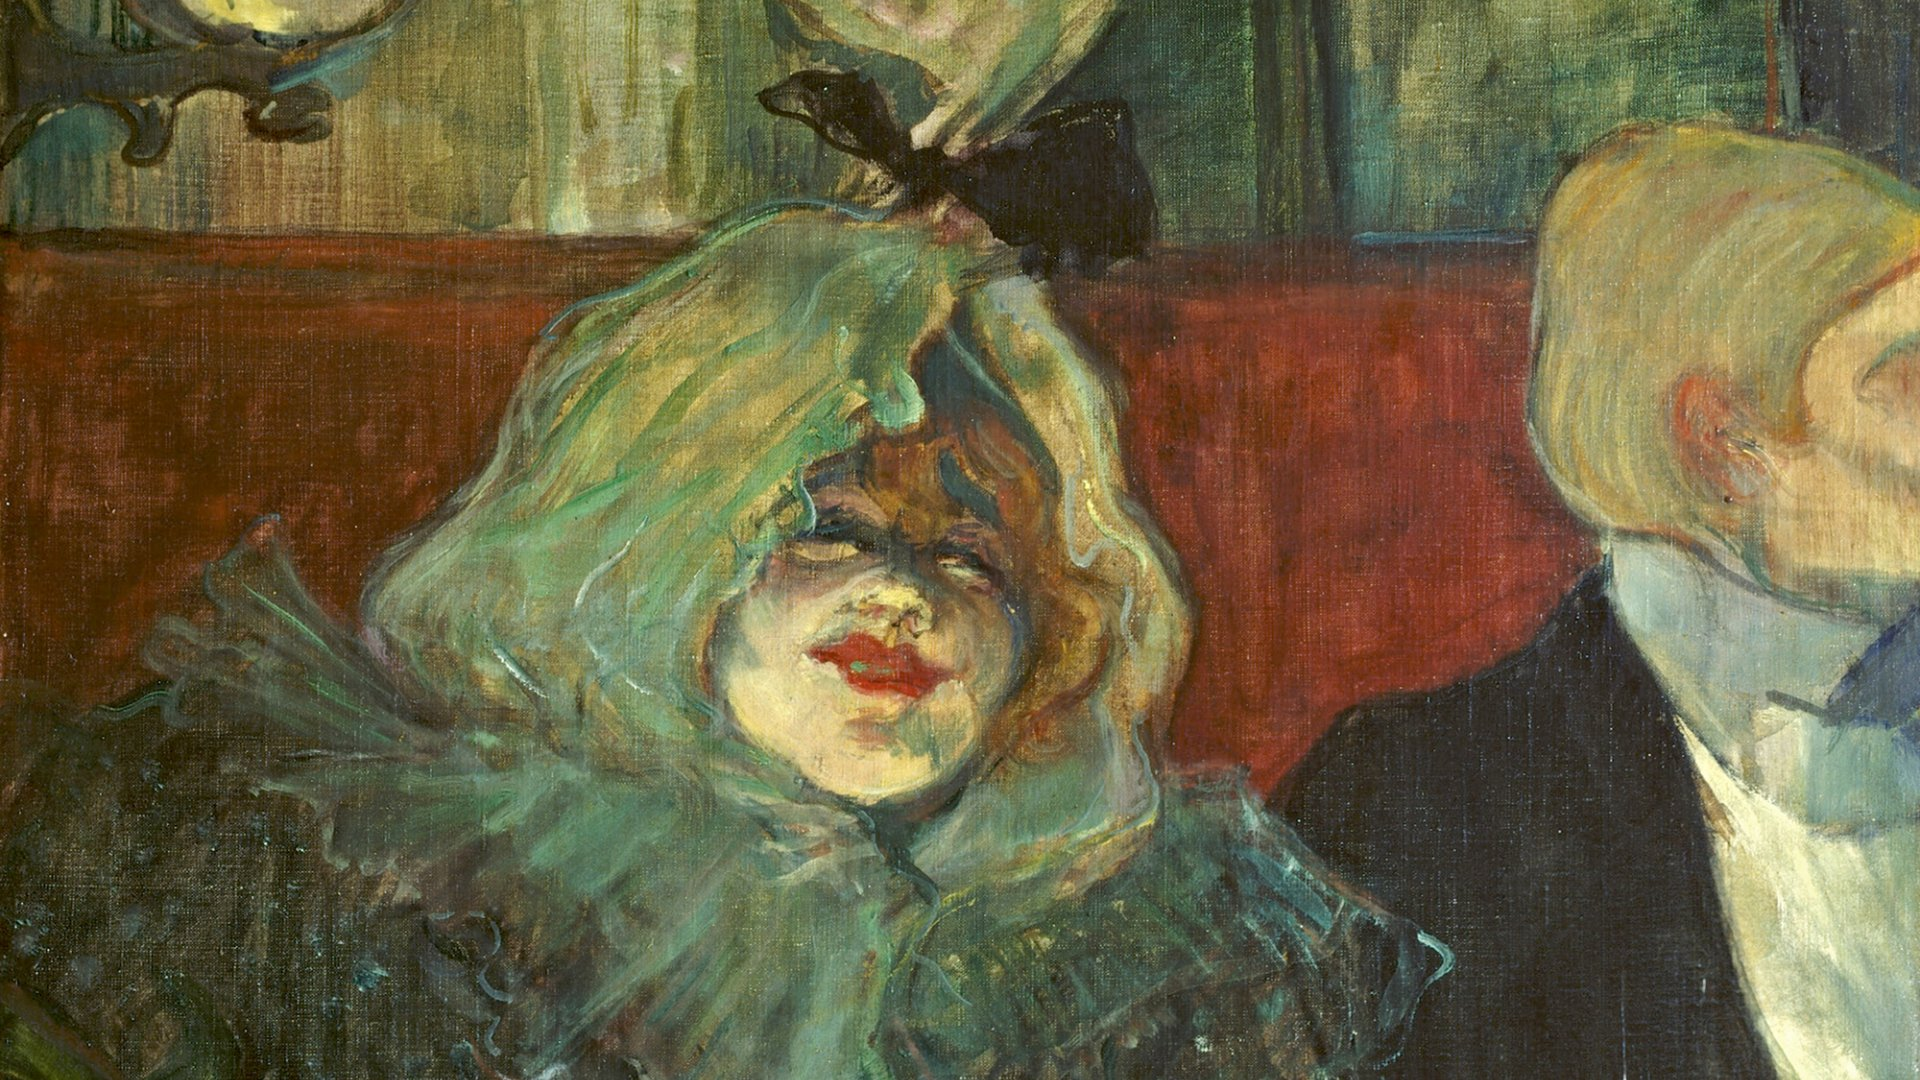 Henri de Toulouse-Lautrec. En un reservado (En el Rat Mort) c. 1899. Óleo sobre lienzo, 55,1 x 46 cm. The Samuel Courtauld Trust. The Courtauld Gallery, Londres.